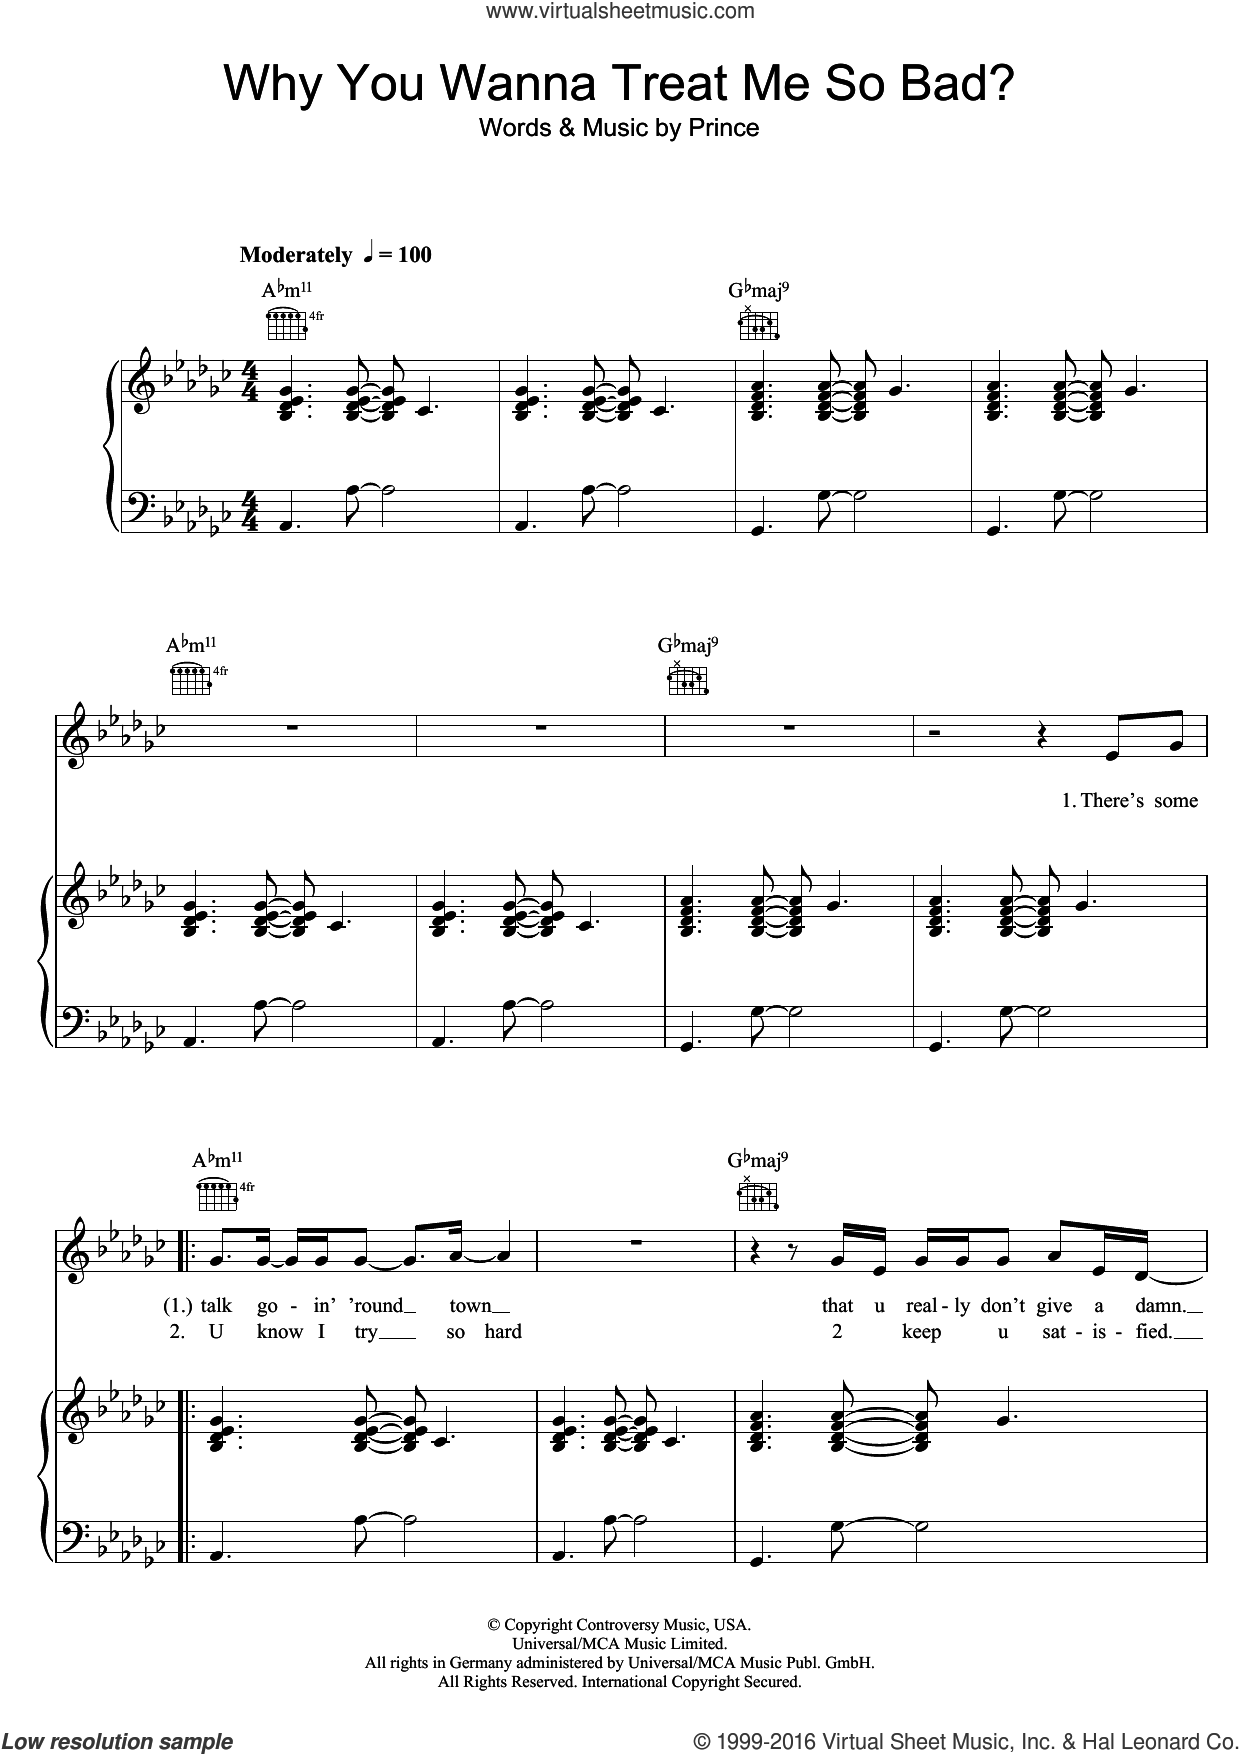 Why You Wanna Treat Me So Bad? sheet music for voice, piano or guitar by Prince, intermediate skill level